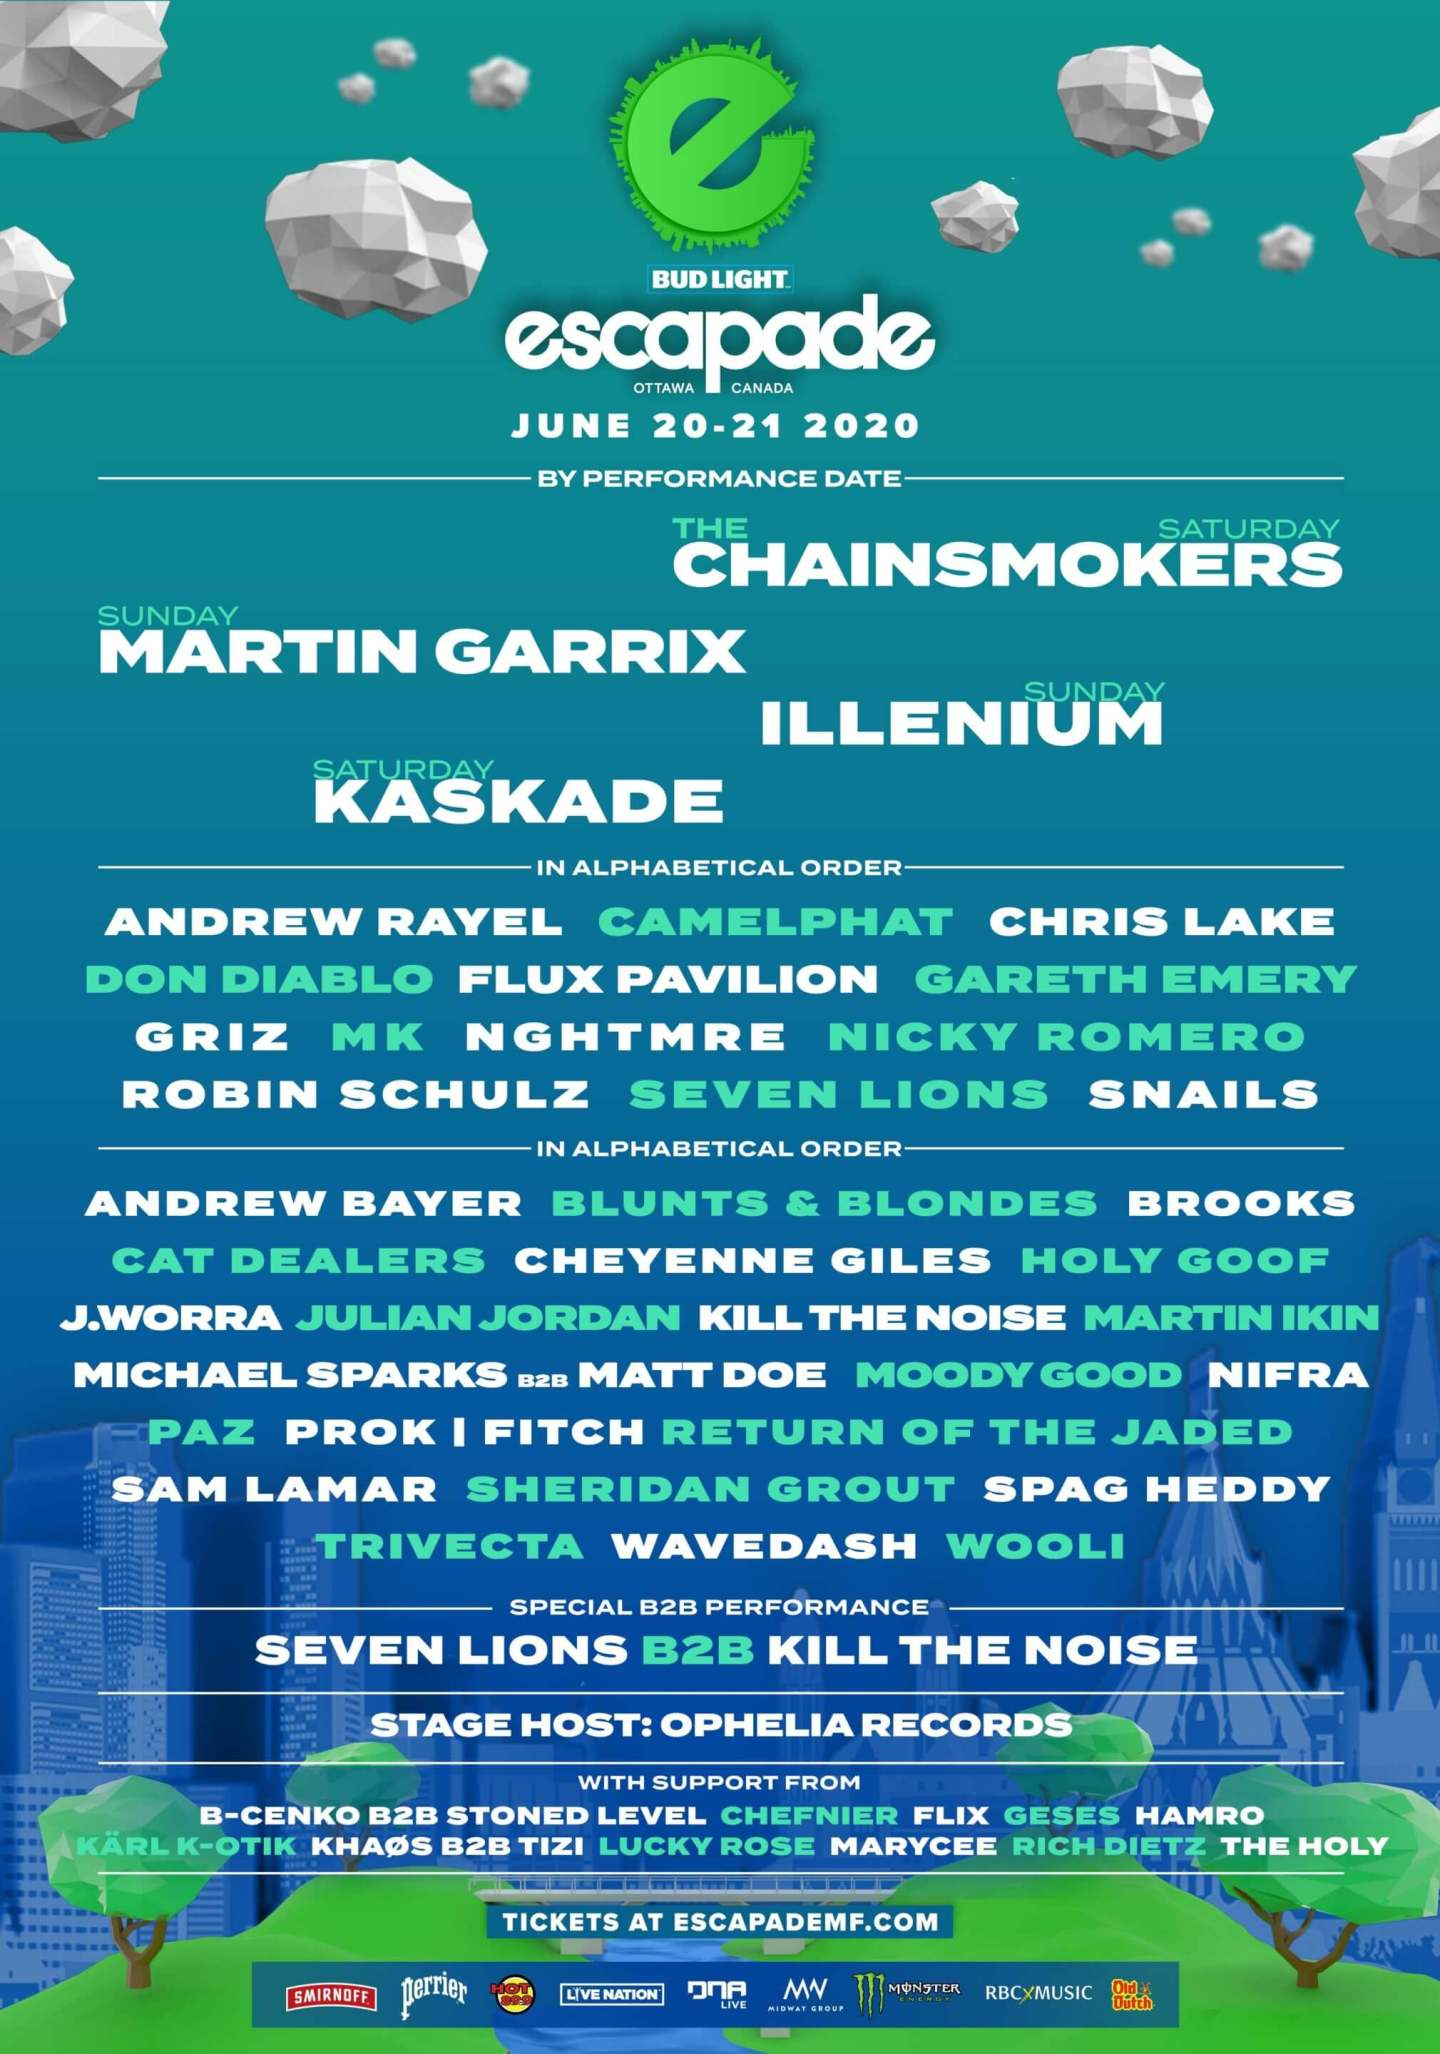 Canada is notorious for amazing EDM Festivals. Escapade is no stranger to having big names on its lineups. So pack your bags and grab your Yerba Mate